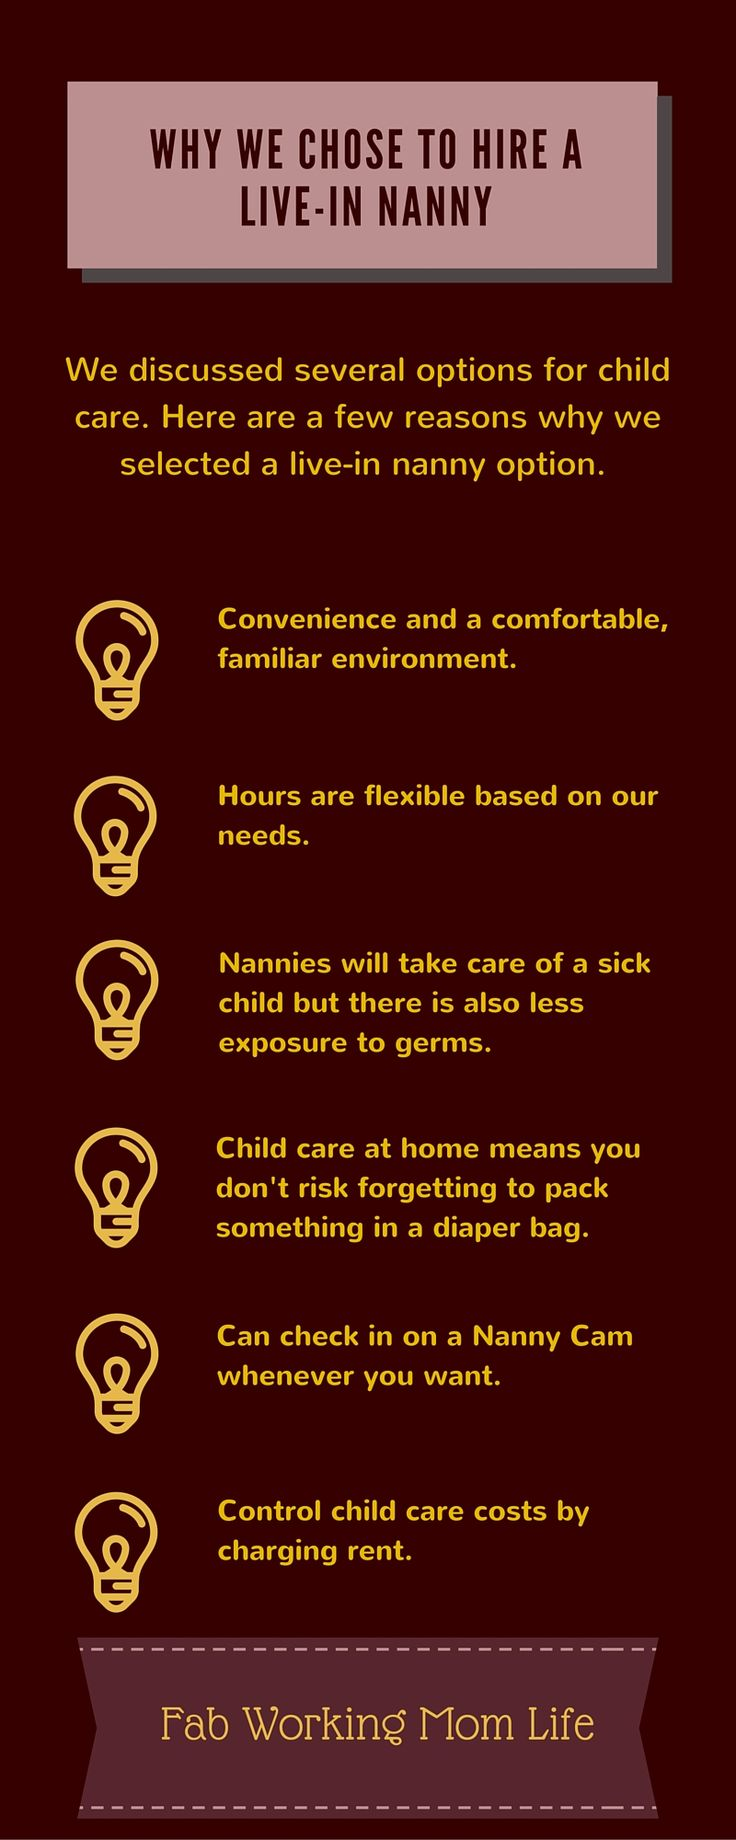 Child Care Options - Our decision to hire a live-in Nanny